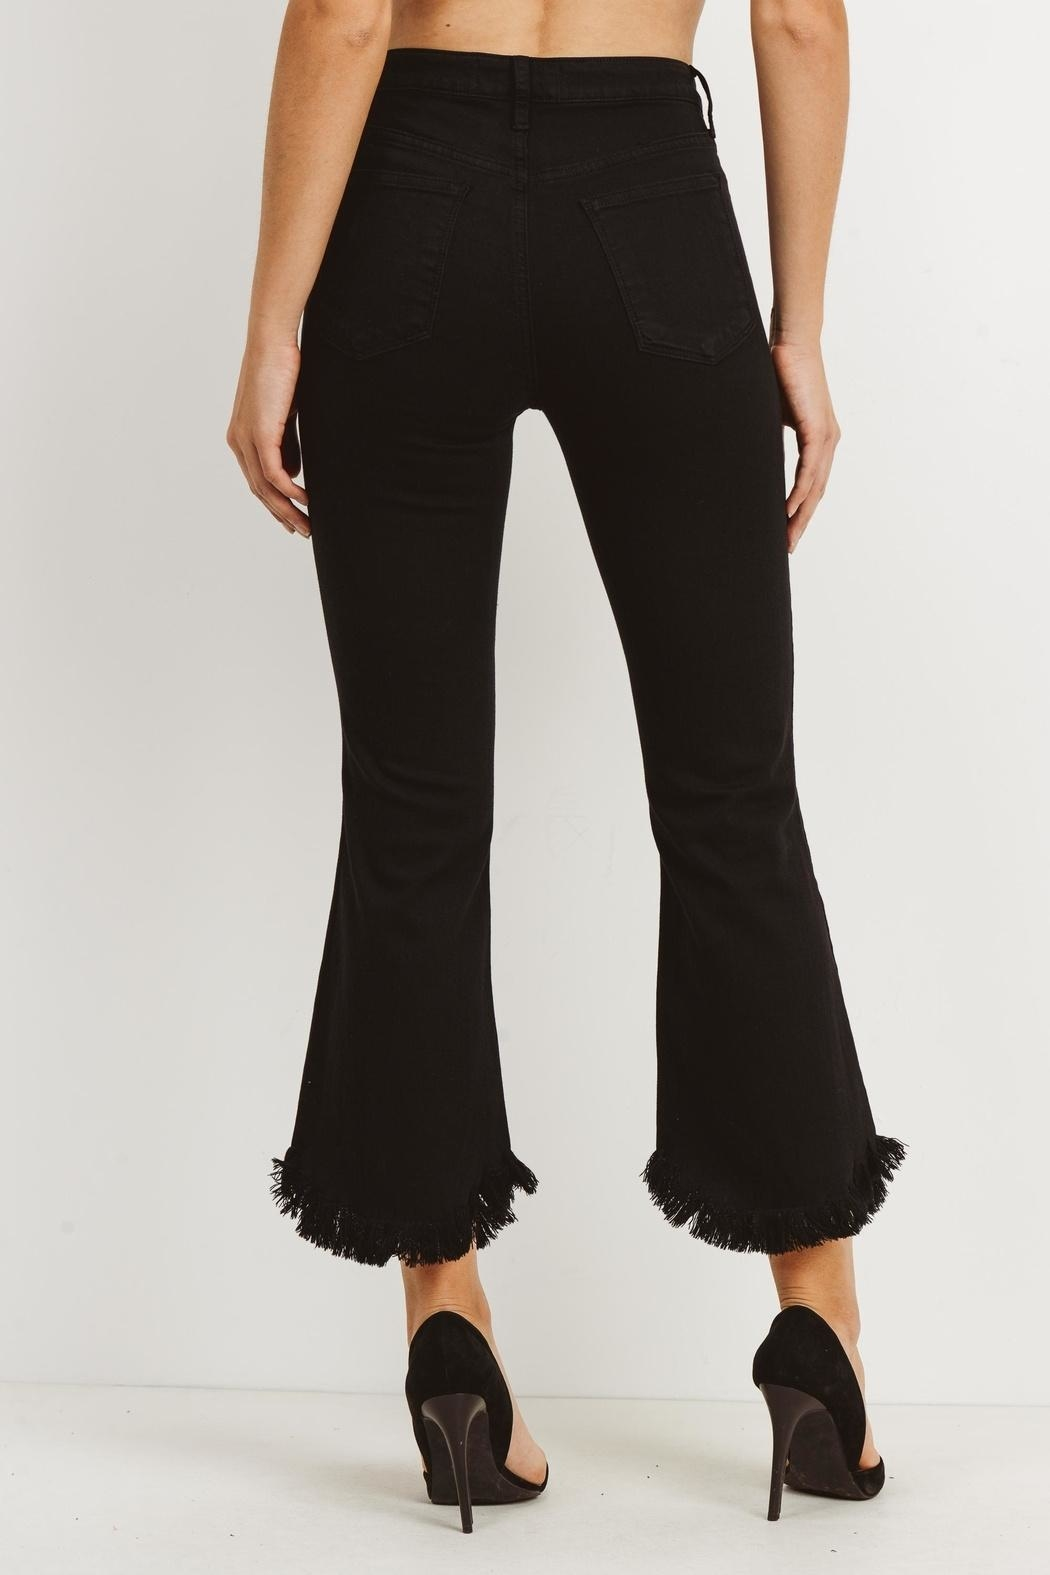 just black Flare Bottom Jeans - Front Cropped Image